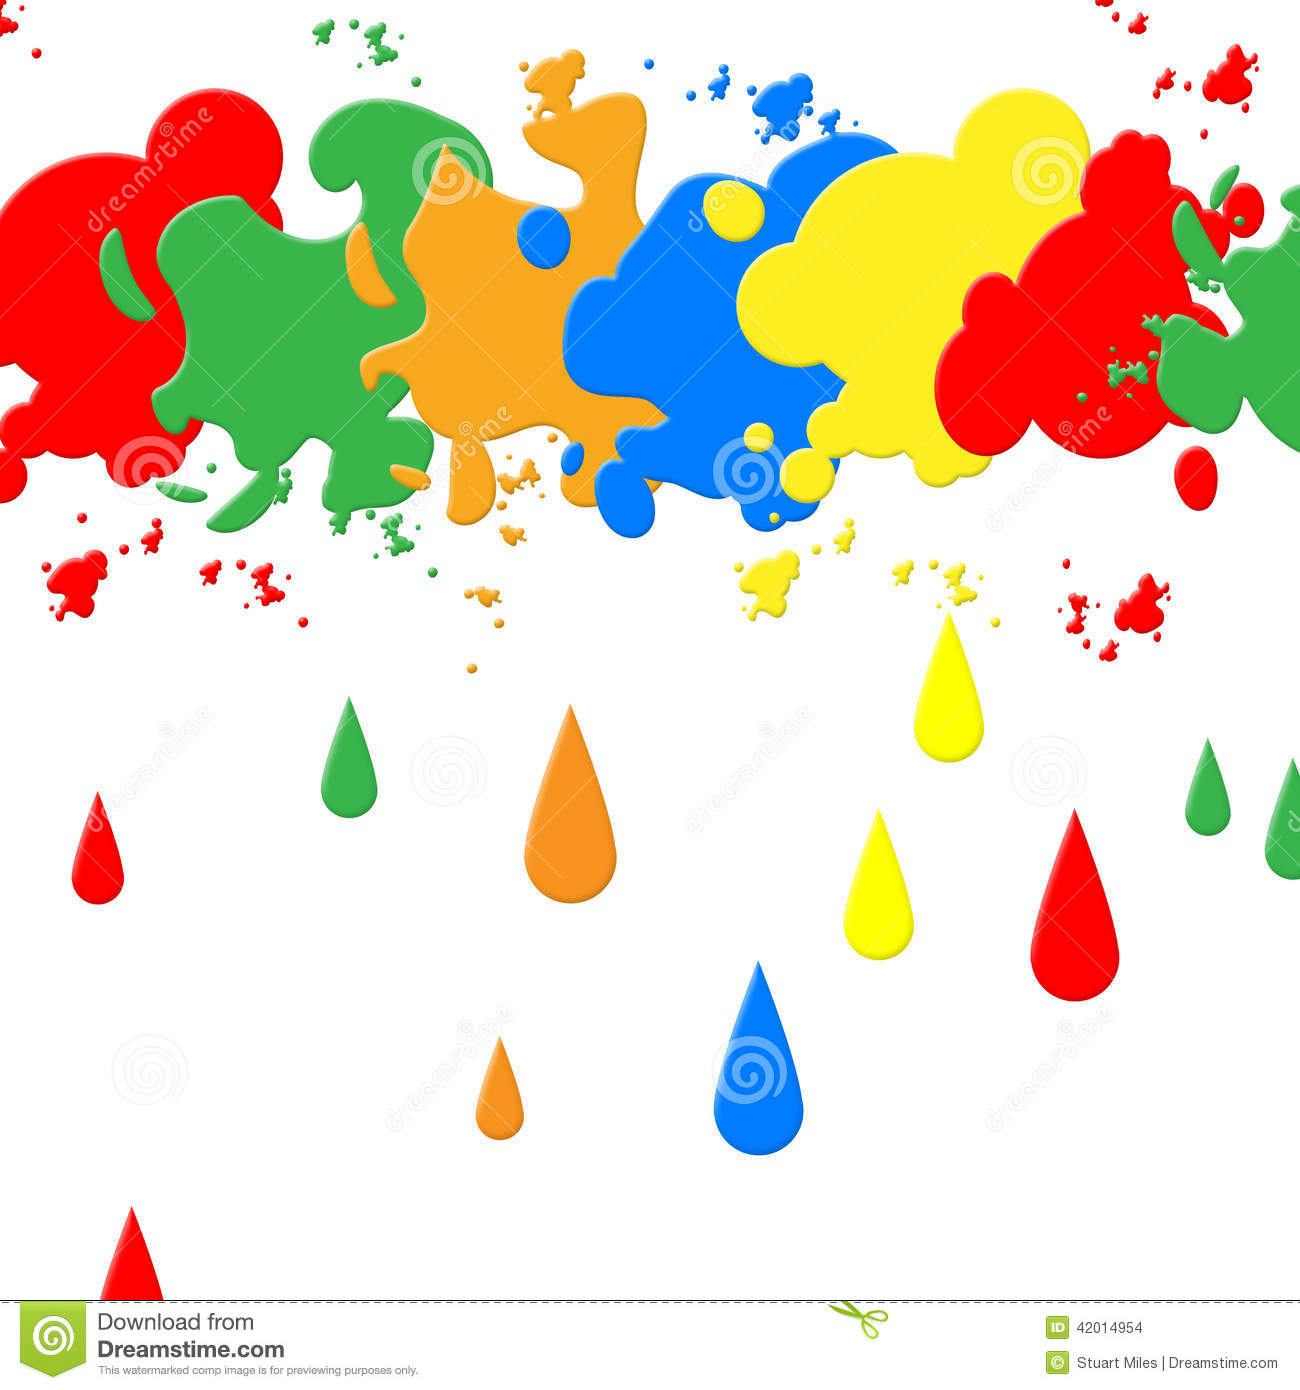 Splash Background Indicates Paint Colors And Backdrop